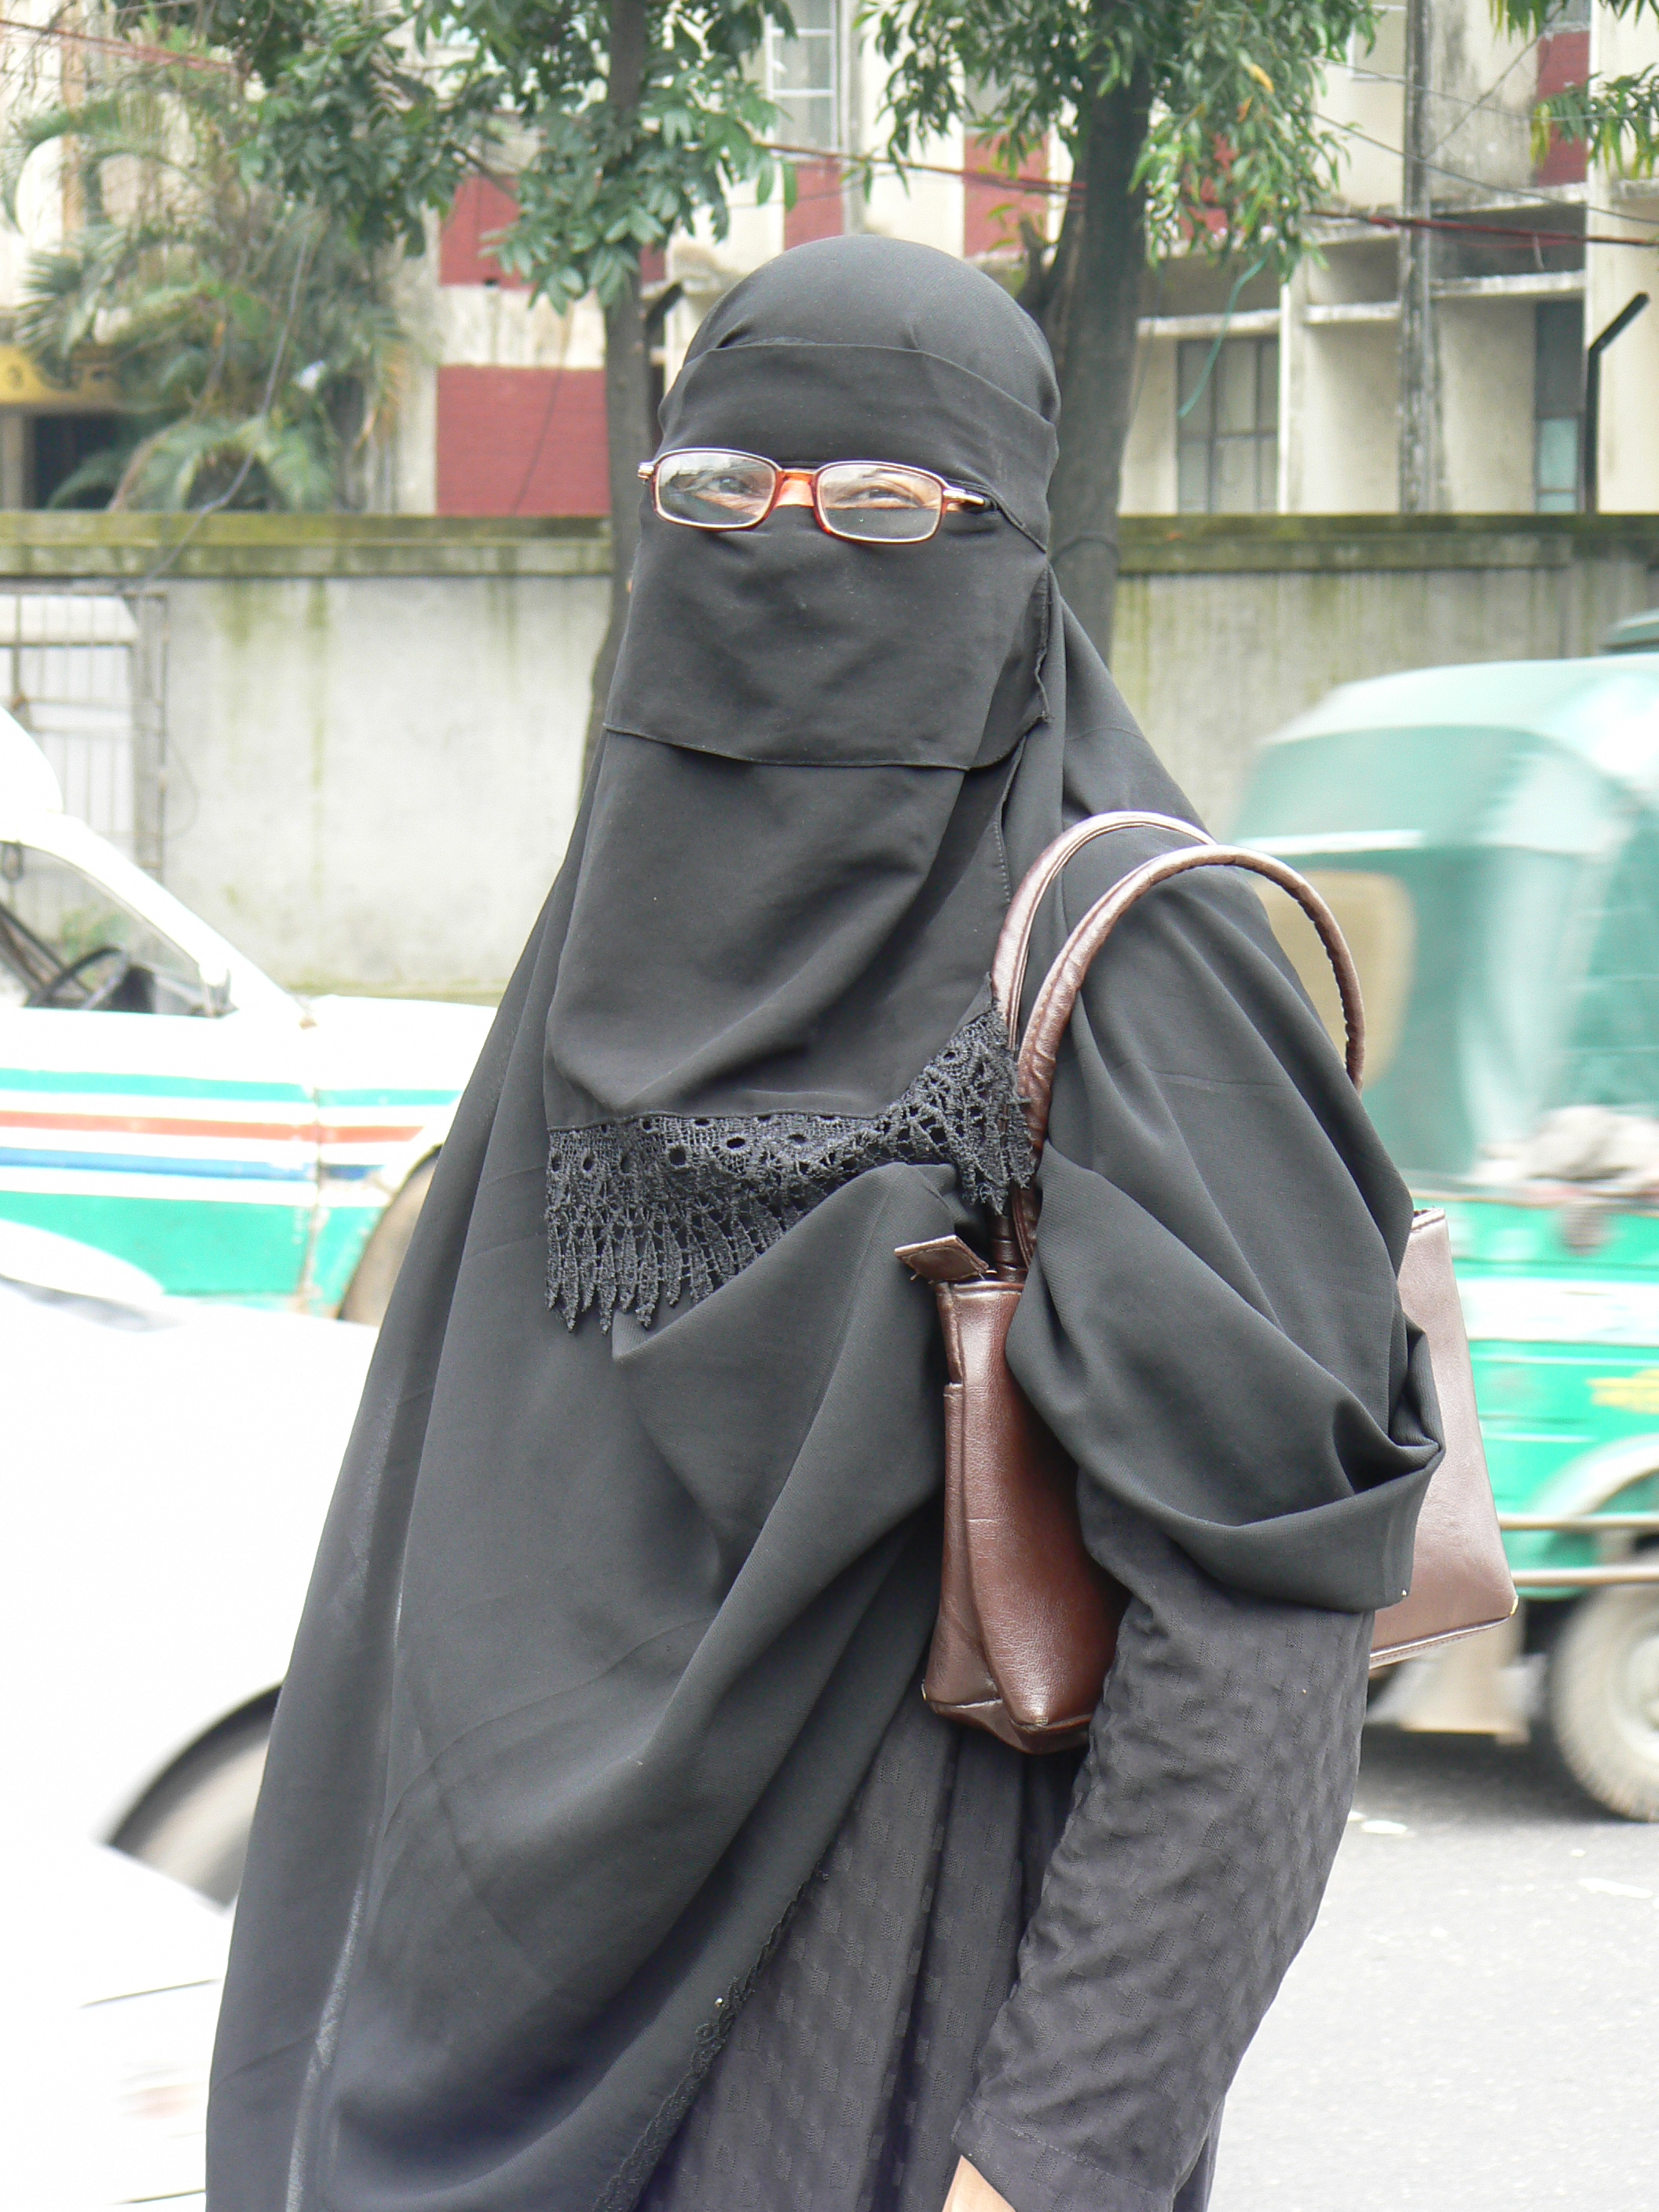 A fully-covered woman out in public